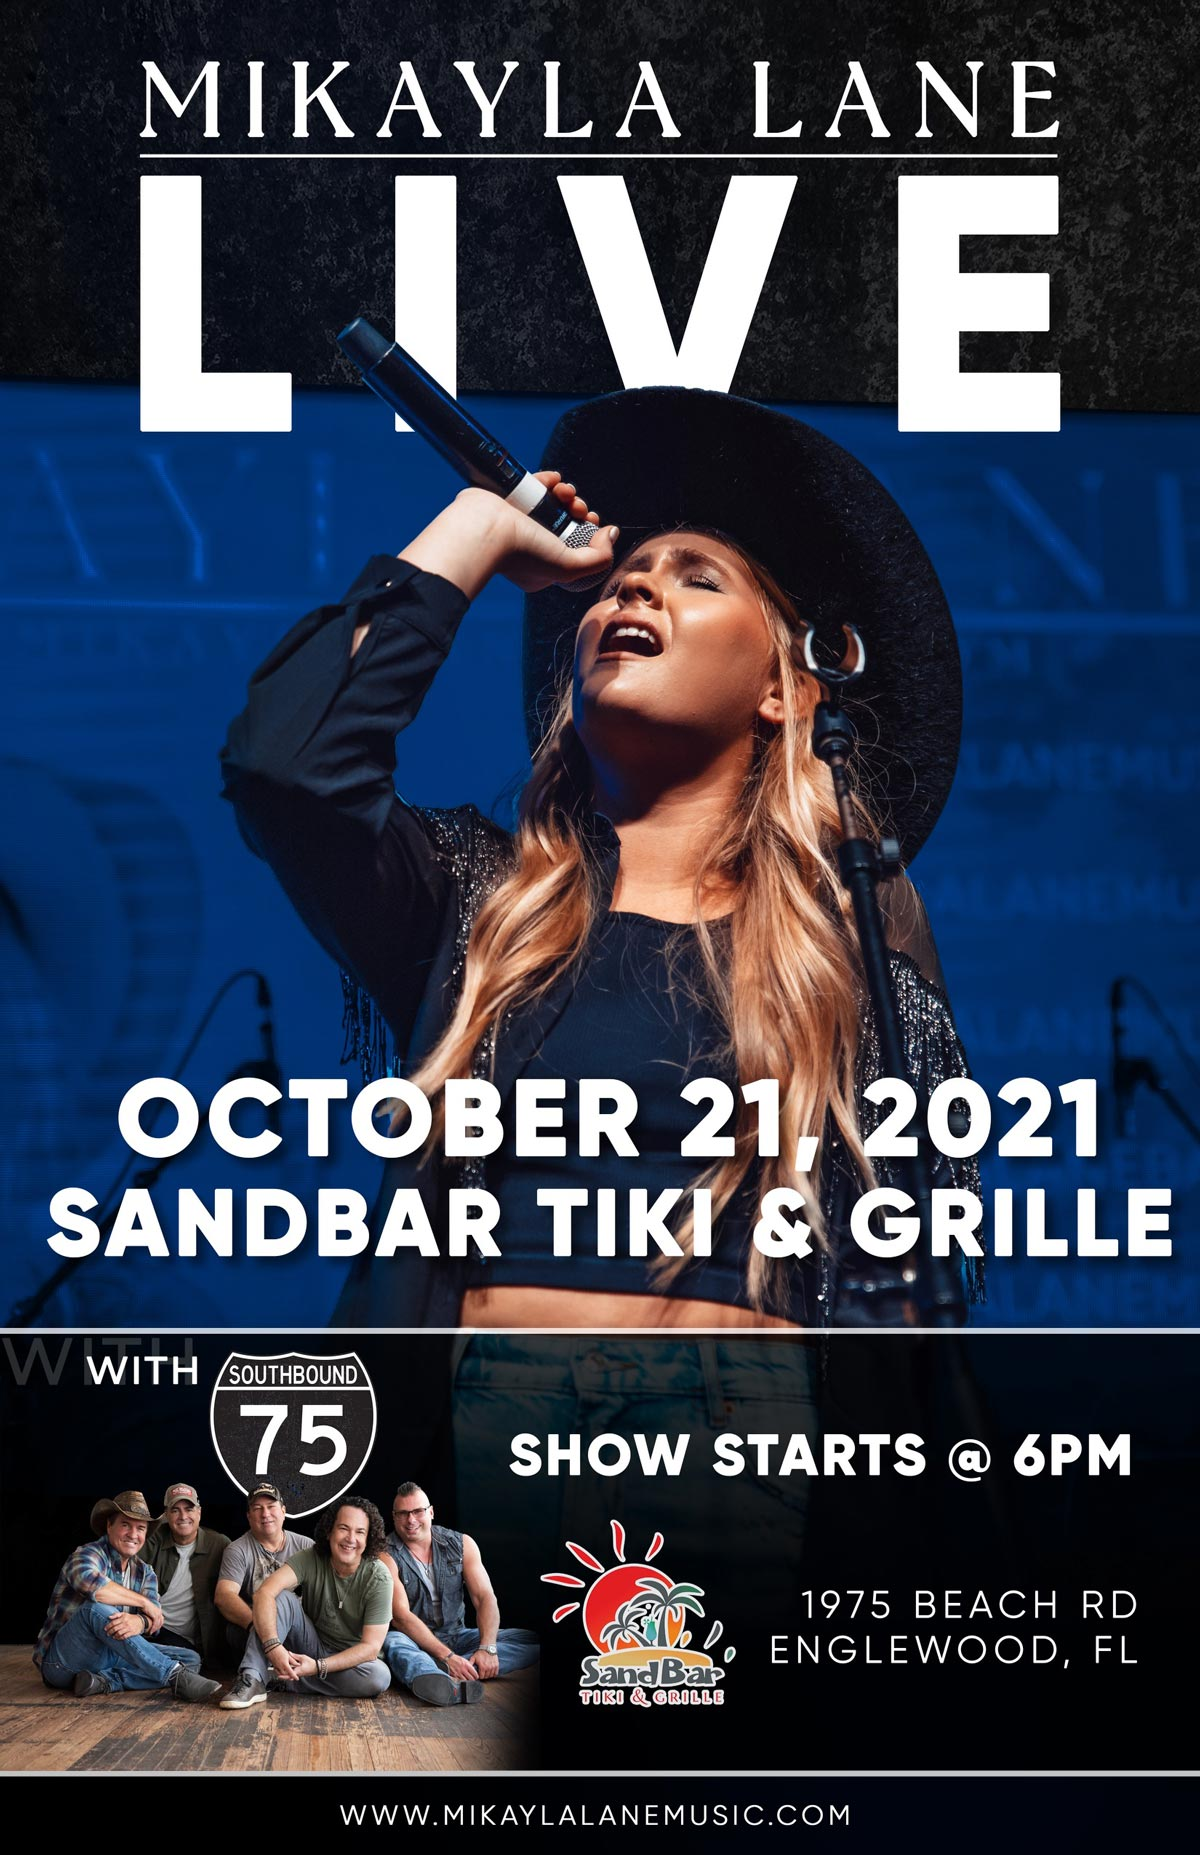 Band Poster with young blond woman wearing cowboy hat: Mikayla Lane Live at Sandbar Tiki & Grille on Oct 21, 2021; Show Starts 6pm; with Southbound 75; at SandBar Tiki & Grille (1975 Beach Rd, Englewood, FL); www.mikaylalanemusic.com